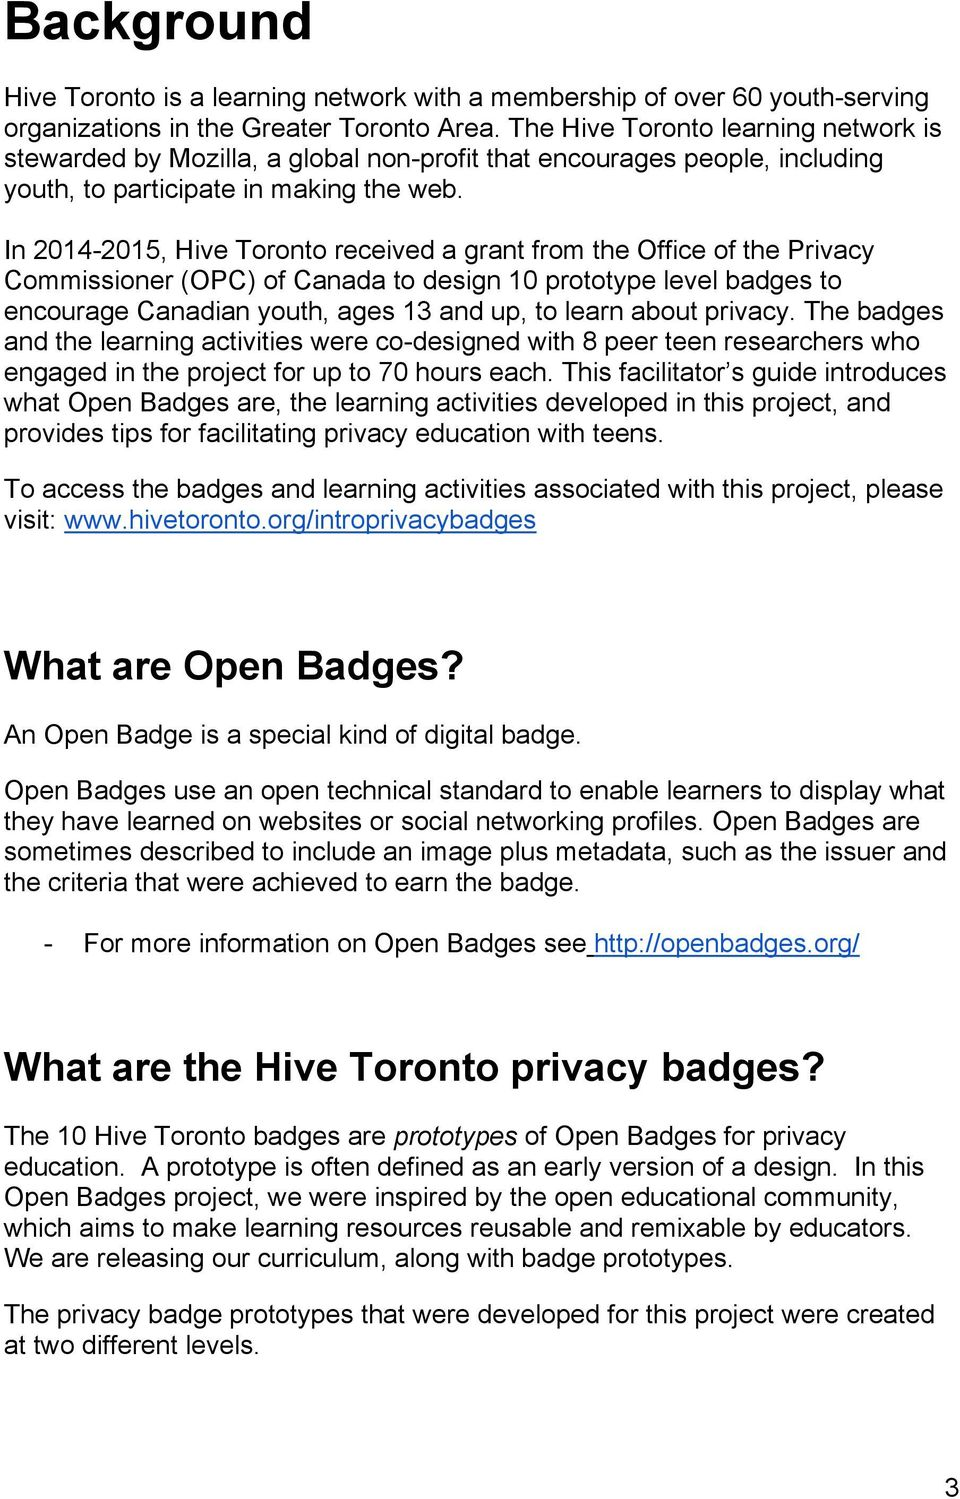 In 2014-2015, Hive Toronto received a grant from the Office of the Privacy Commissioner (OPC) of Canada to design 10 prototype level badges to encourage Canadian youth, ages 13 and up, to learn about